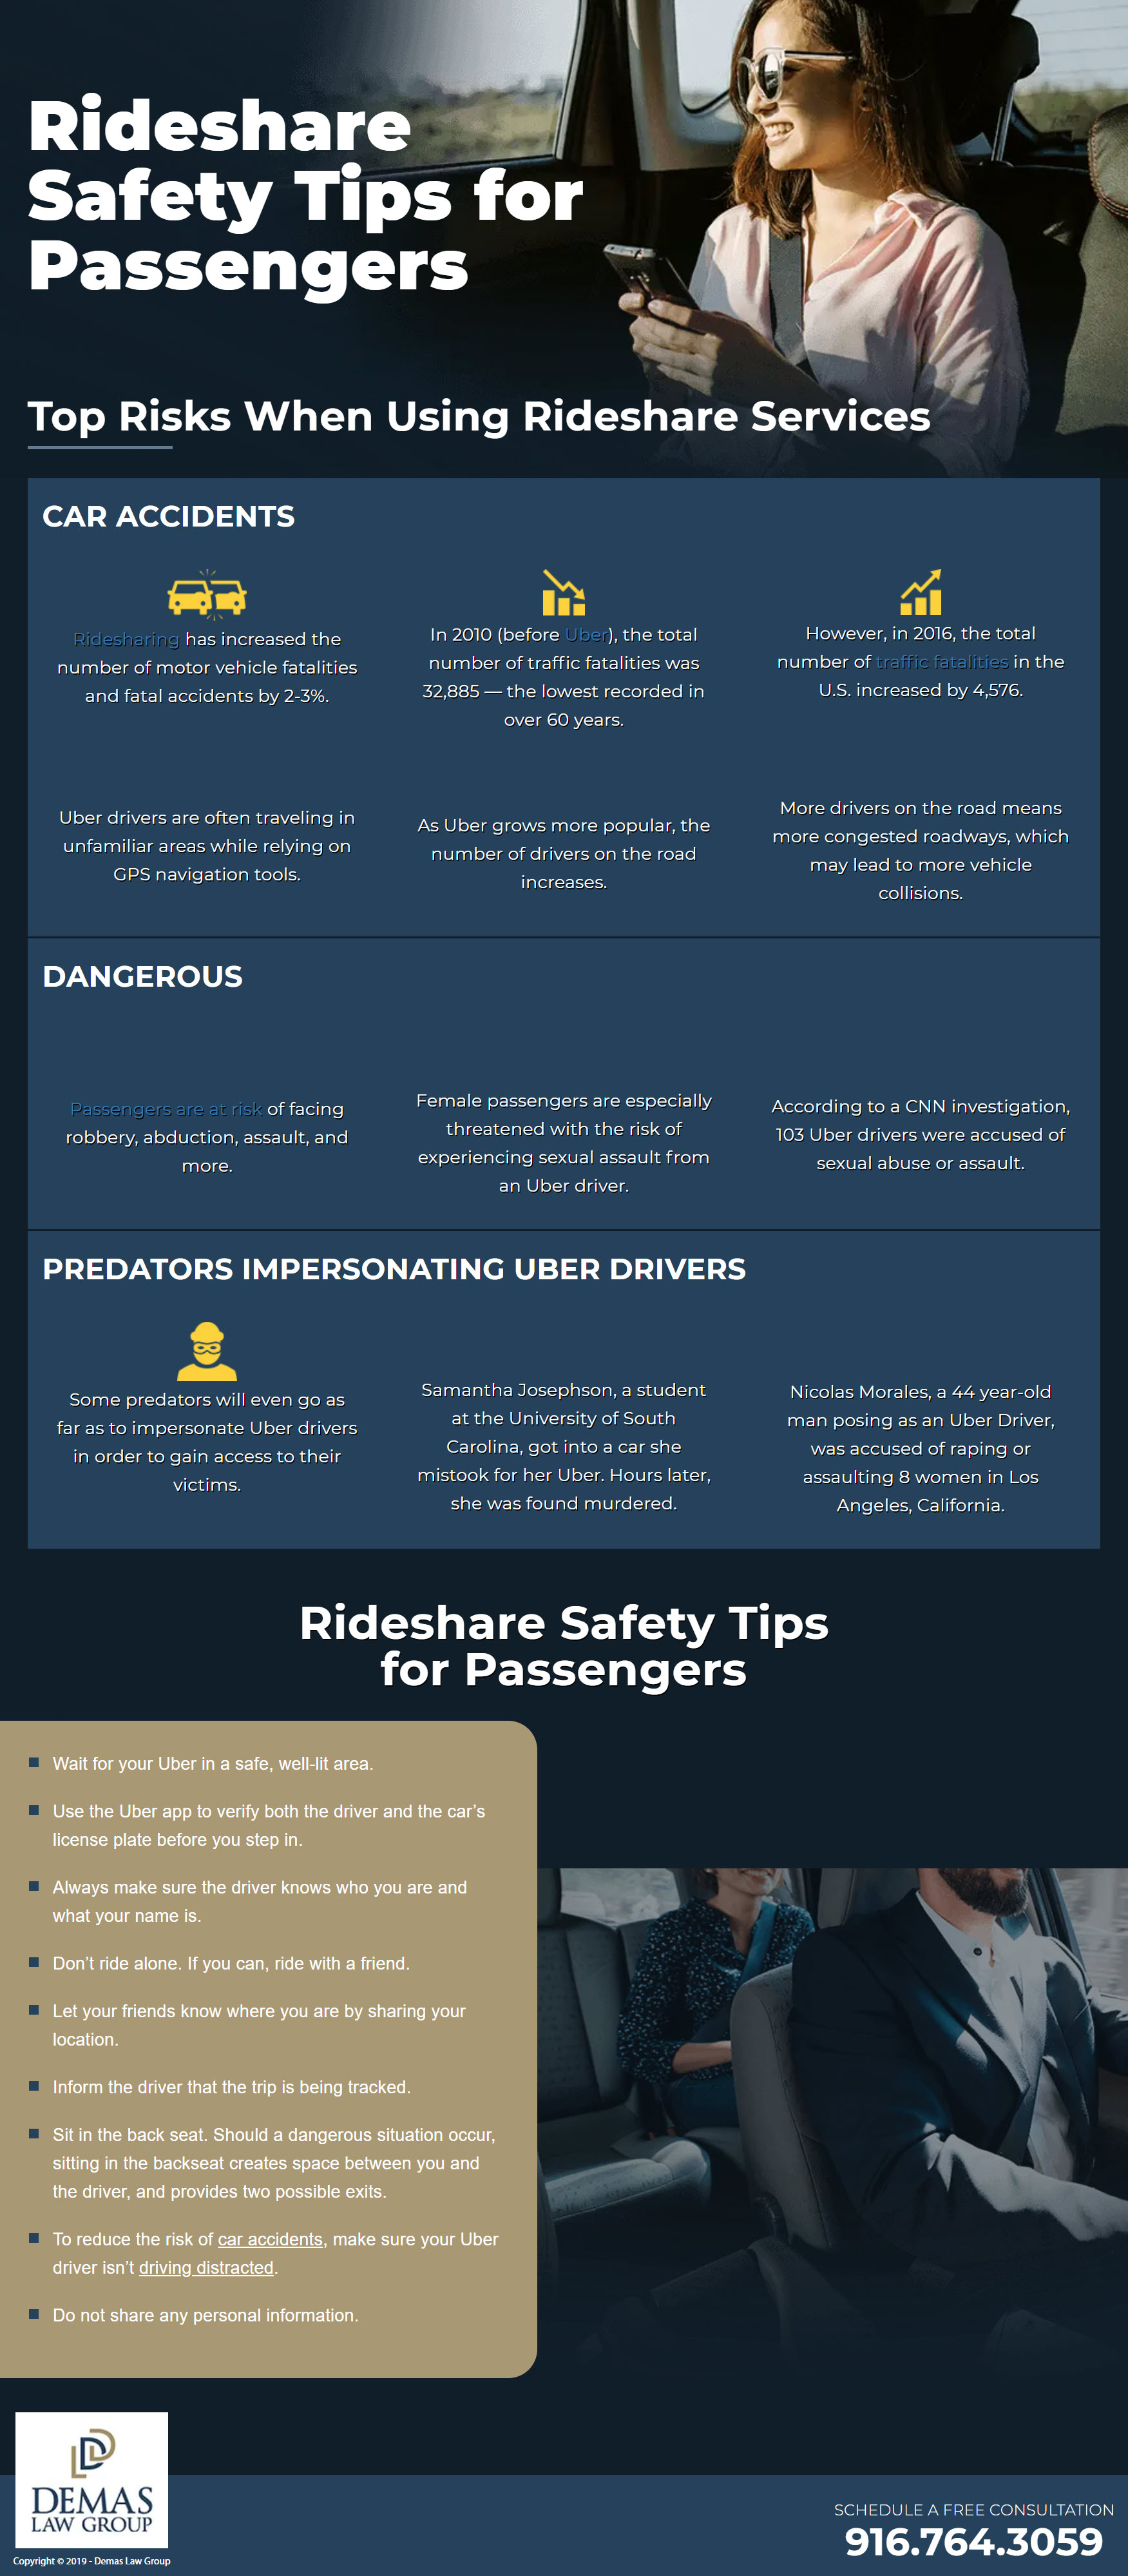 Rideshare Safety Tips for Passengers